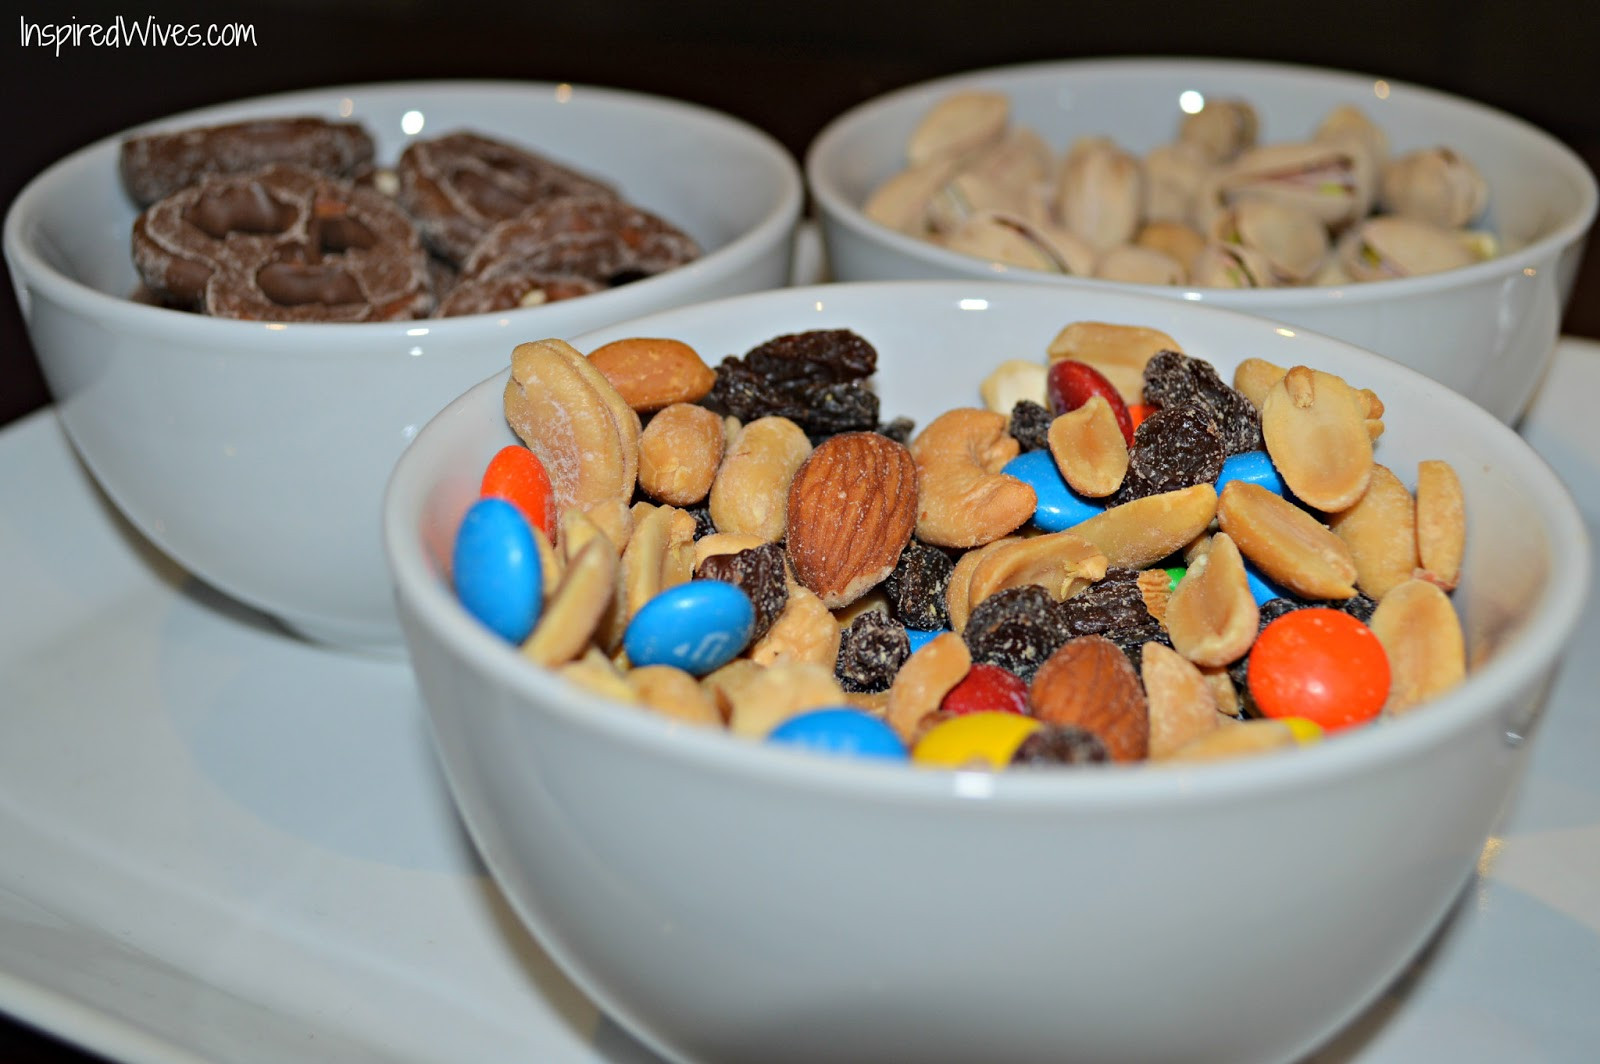 Healthy Inexpensive Snacks  Inspired I Dos Game Night Pajama Party